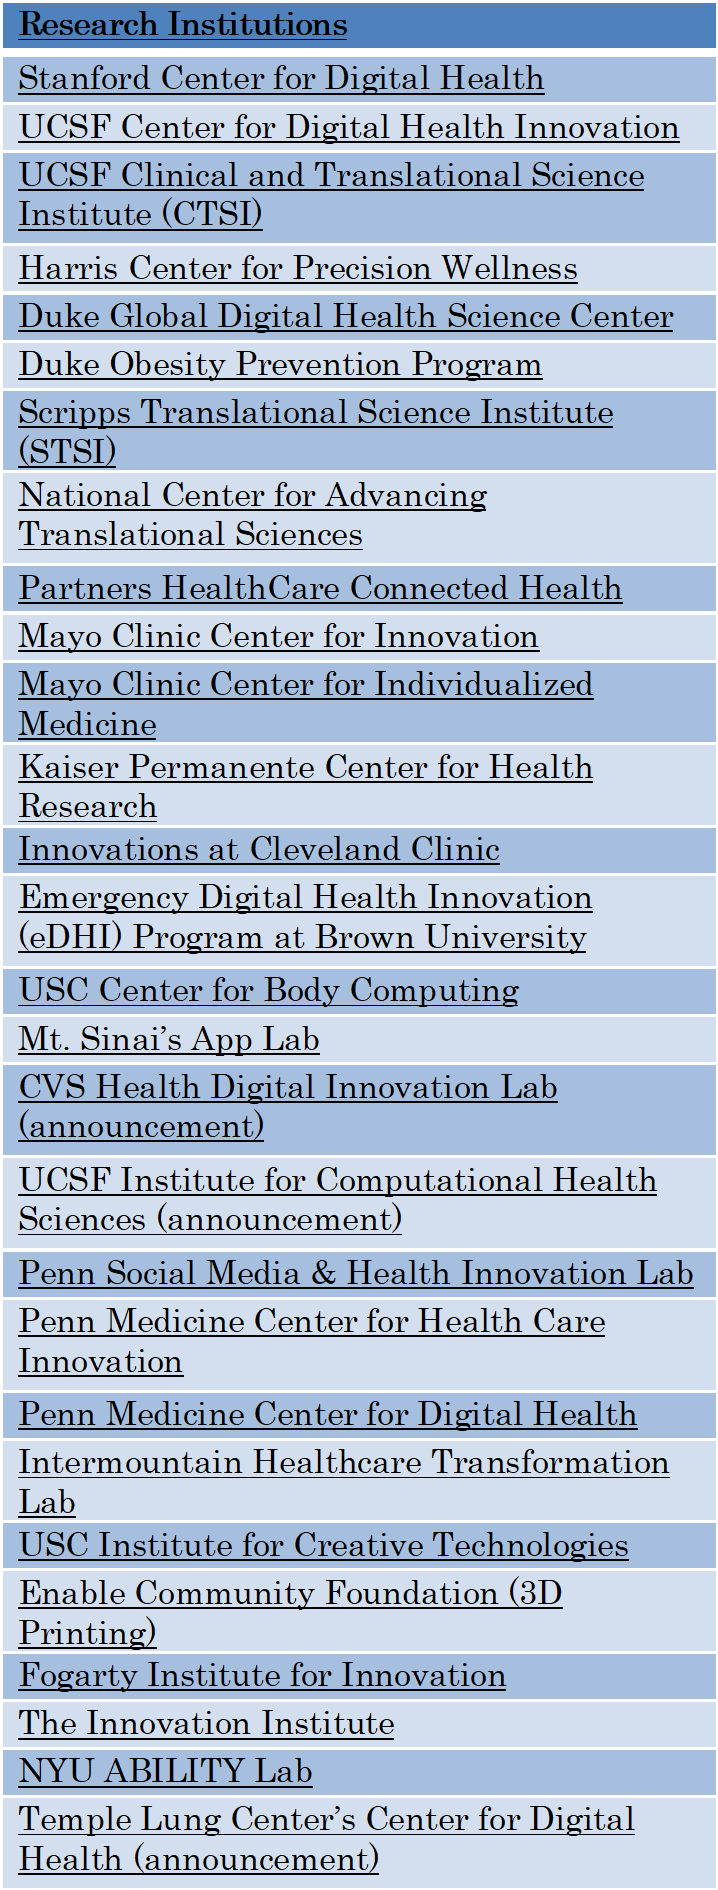 Research Institutions Table 1.png